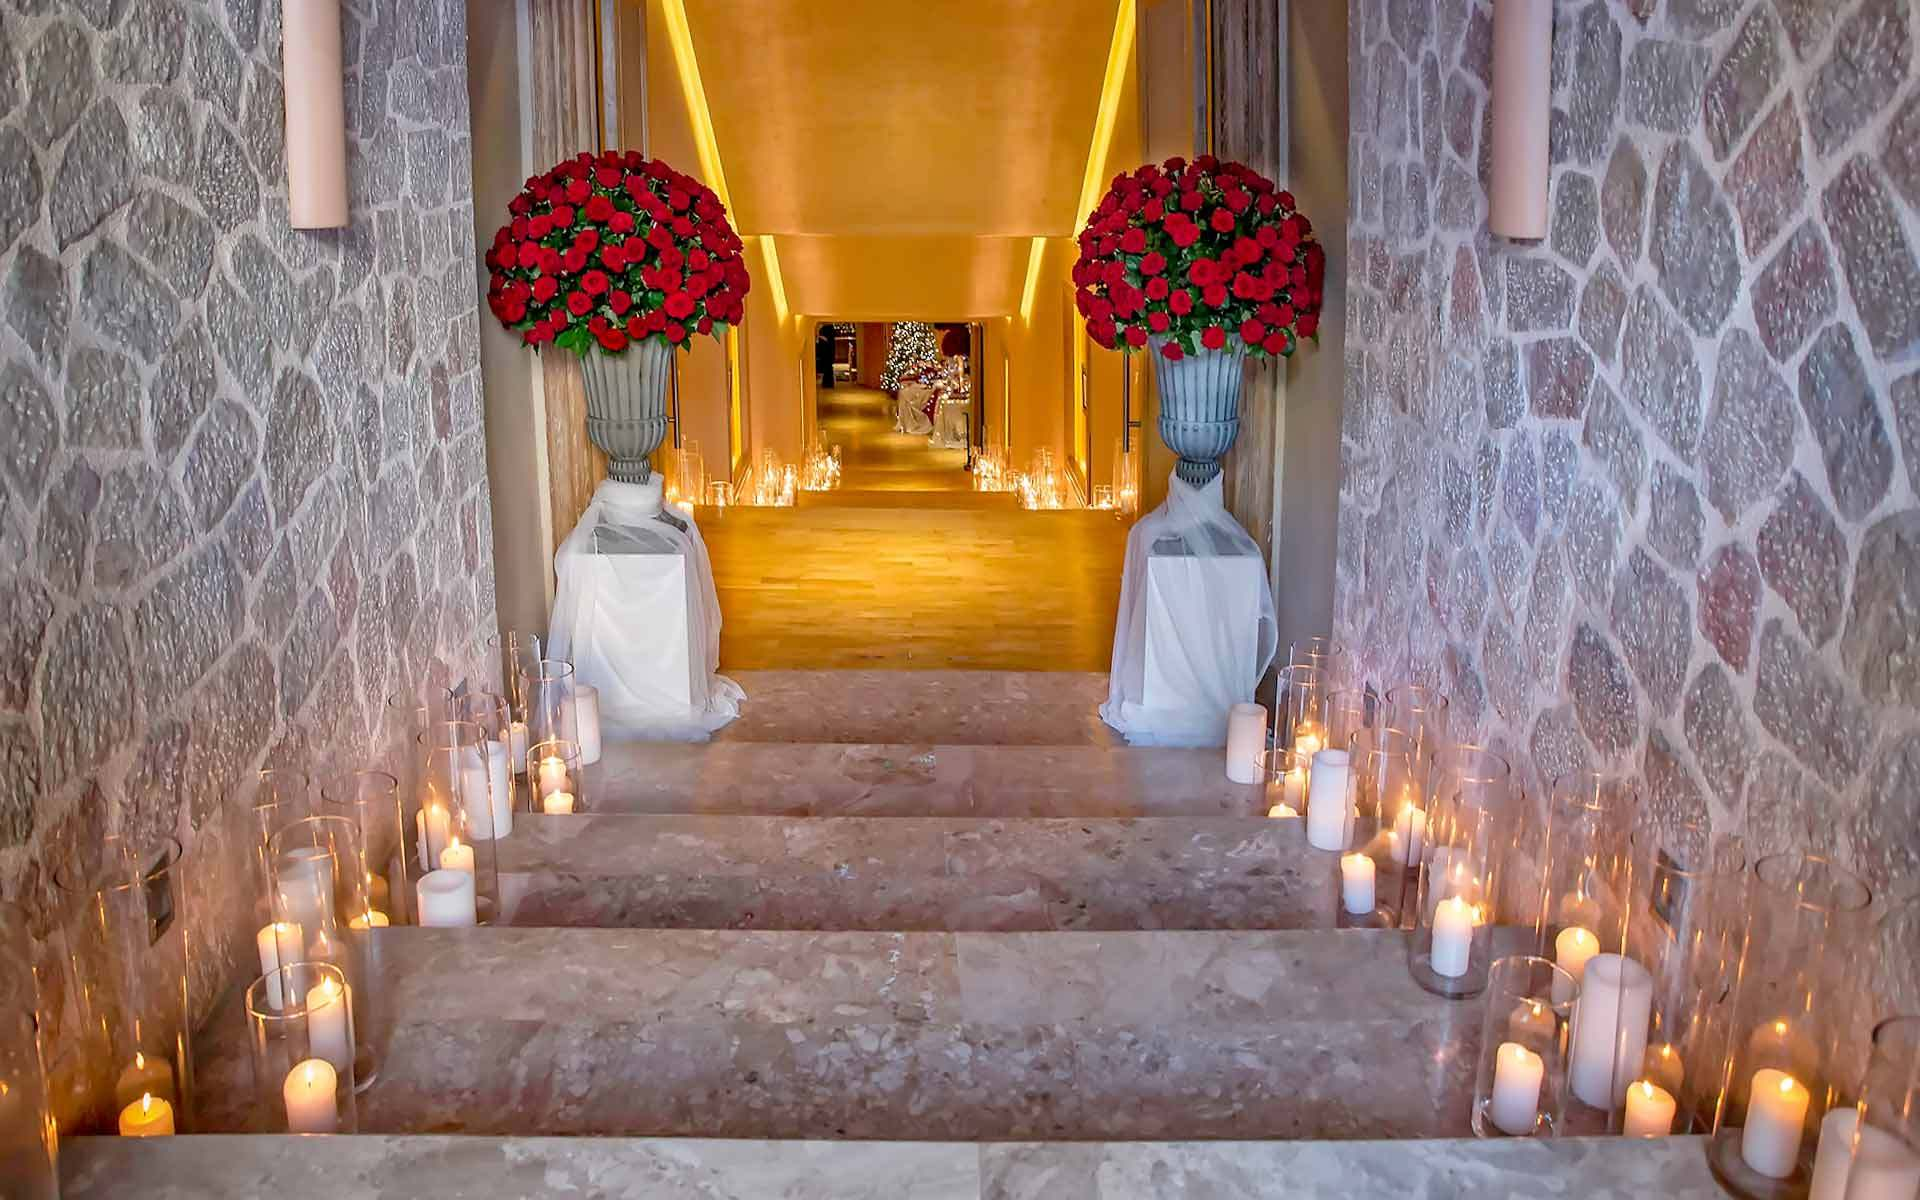 Entrance-Of-Candles-And-Red-Roses-For-A-Royal-Wedding